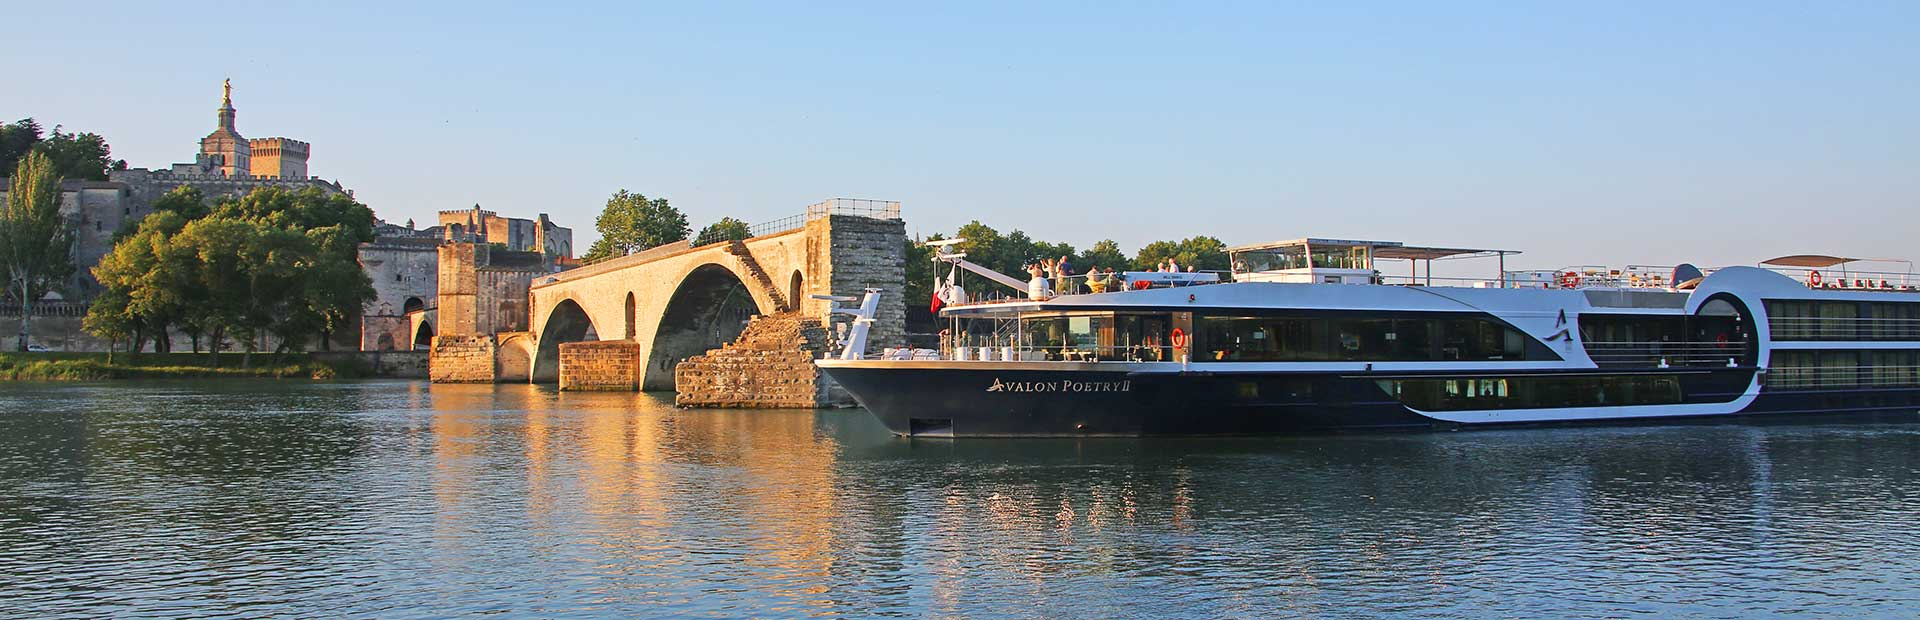 Avalon Poetry II Exterior Rhone